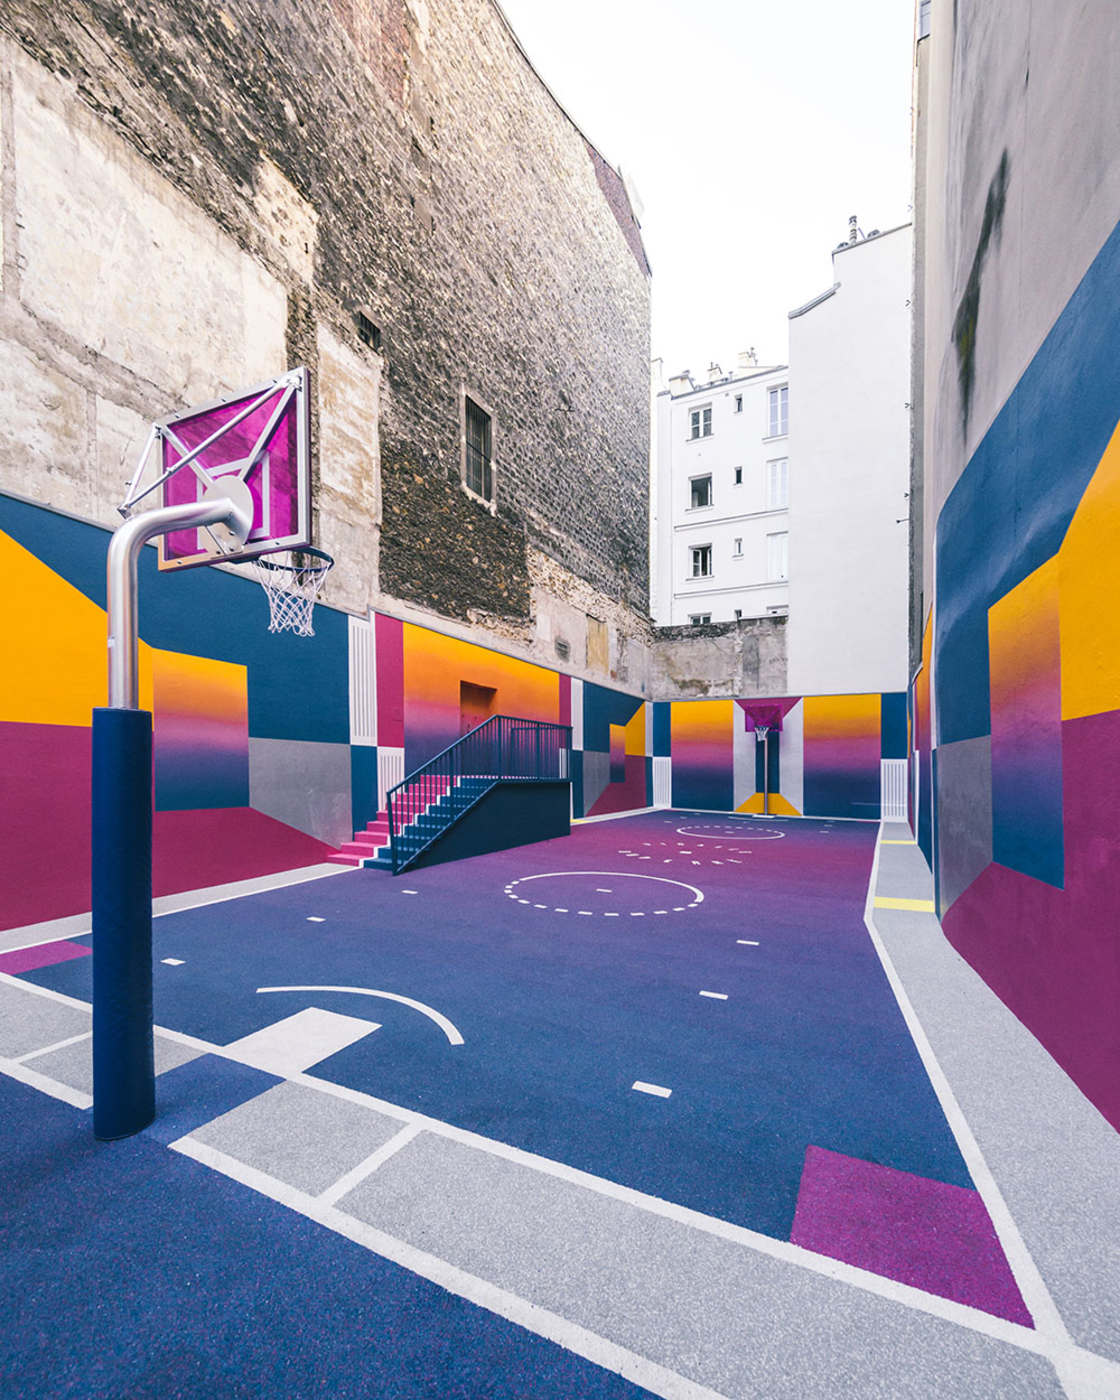 The Playground Duperre Pigalle just got a new design! (9 pics)